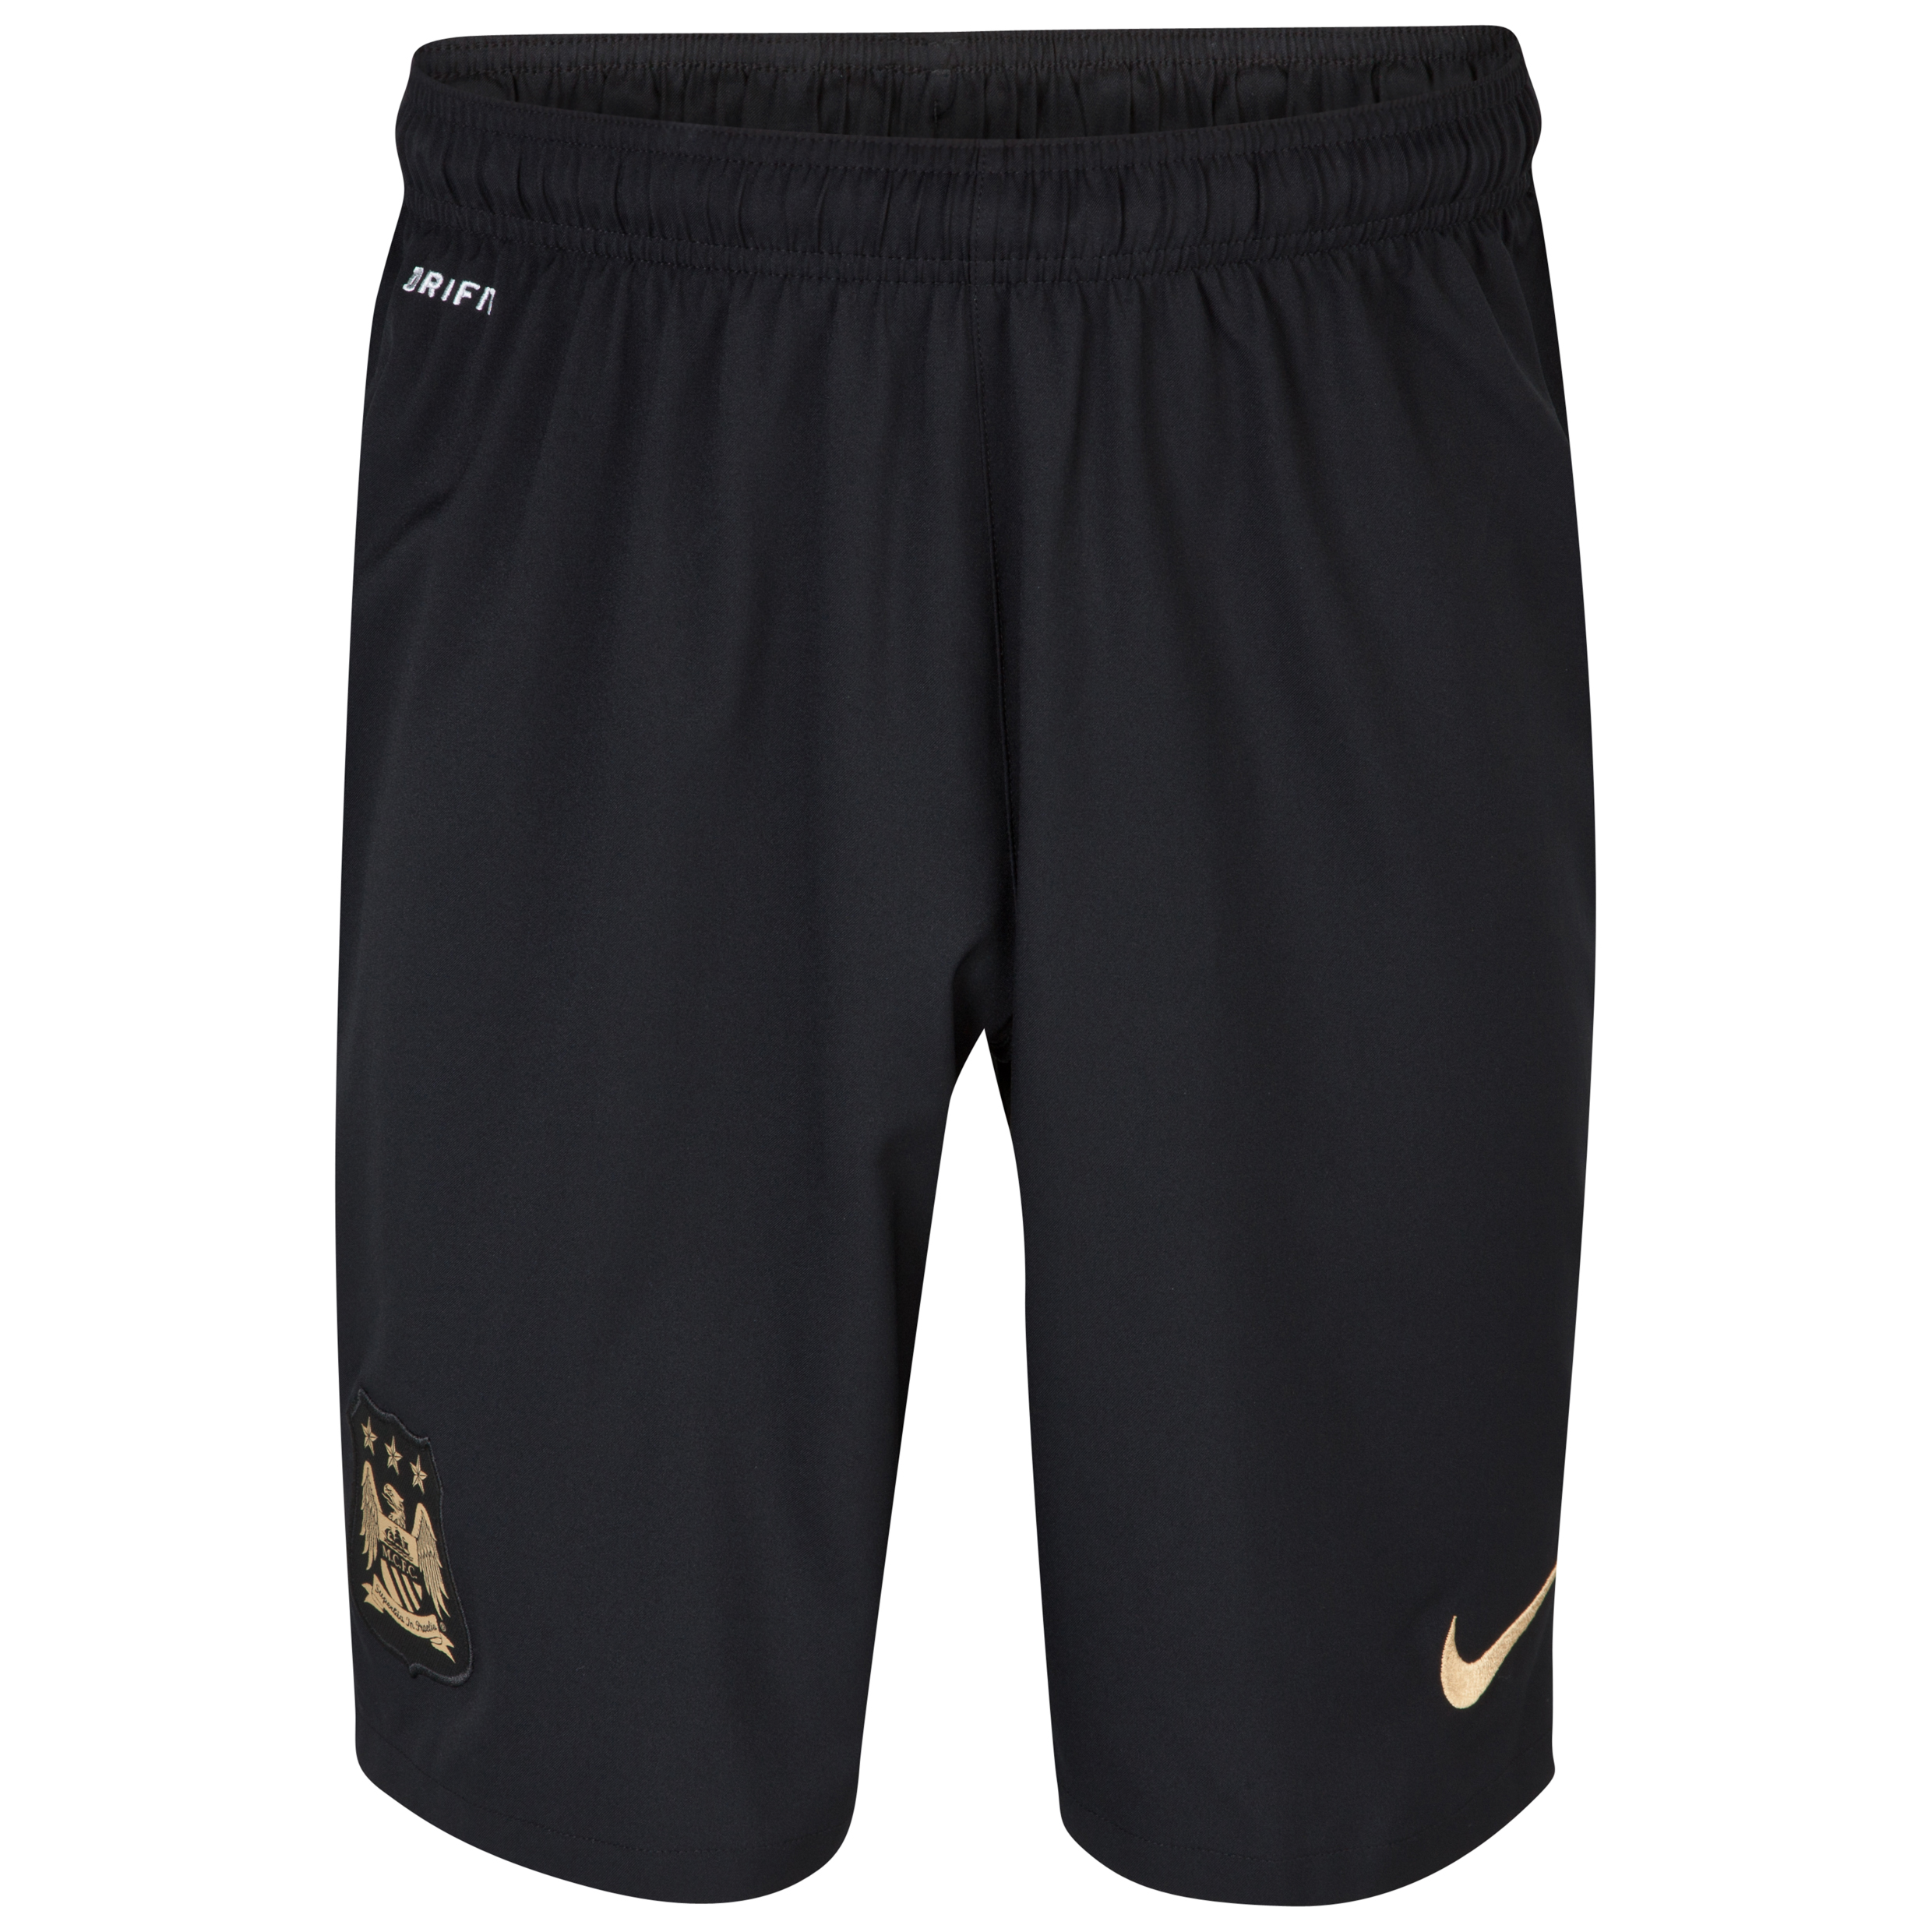 Manchester City Away Short 2013/14